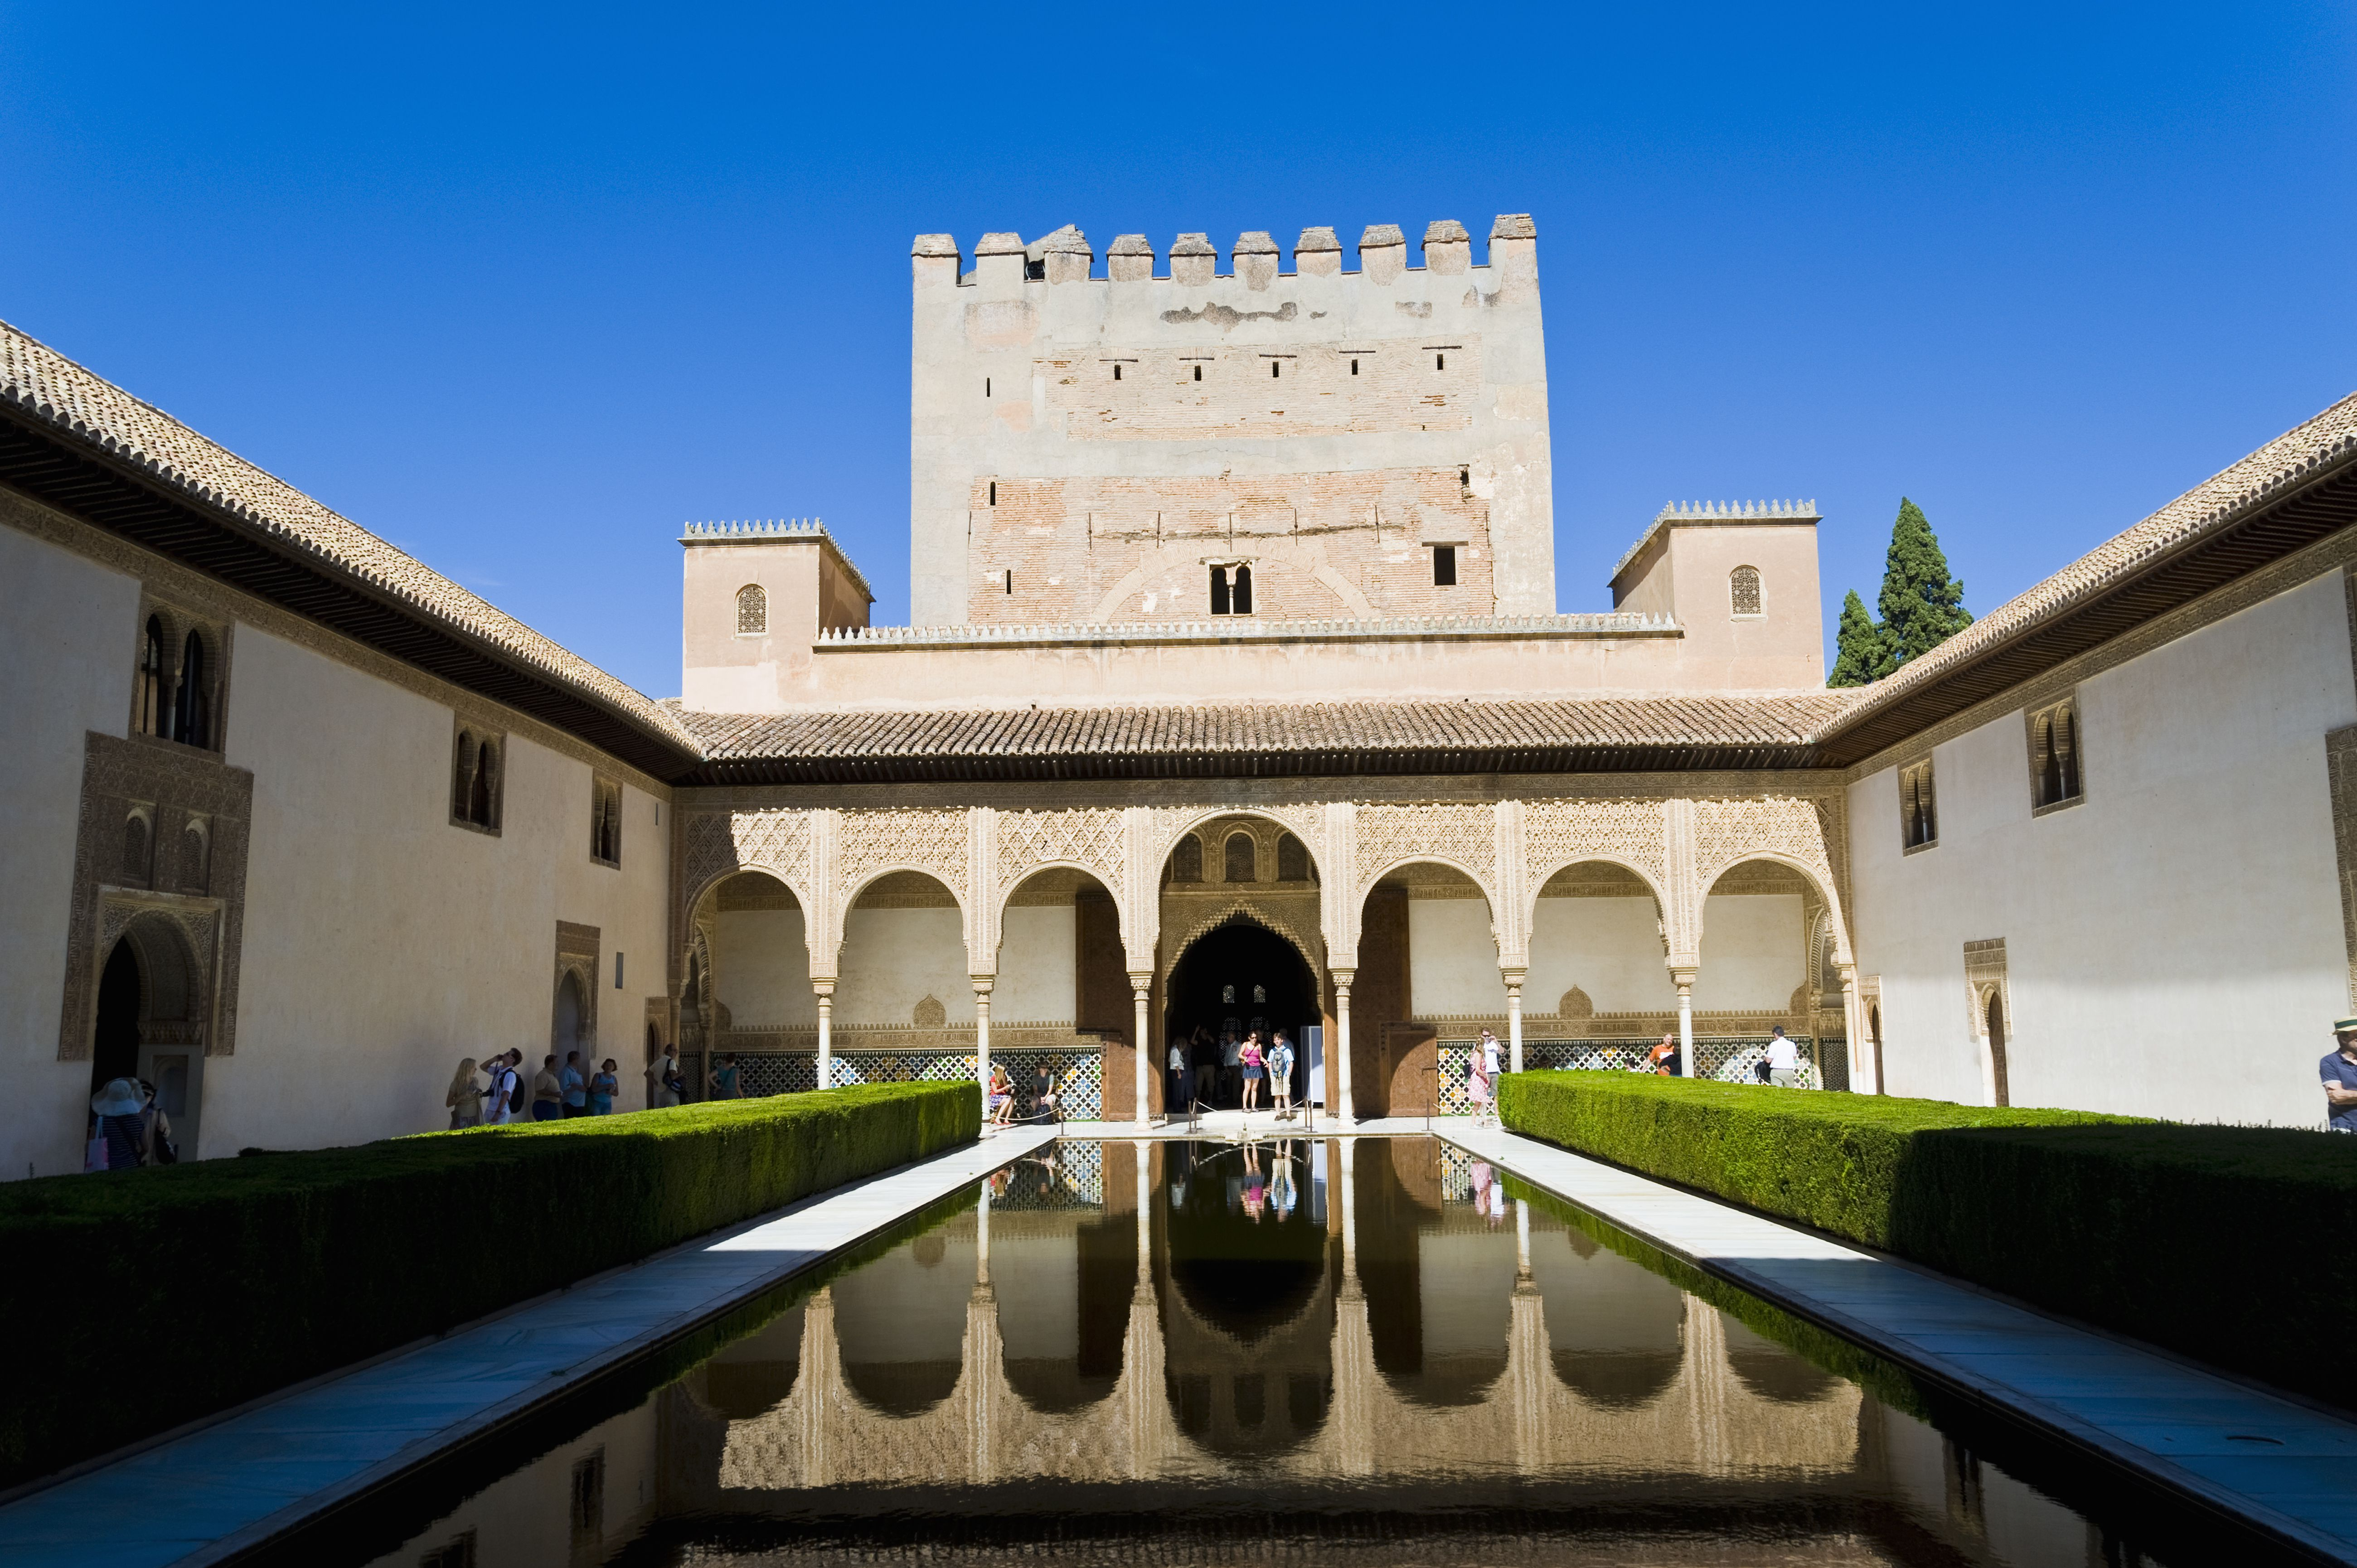 Alhambra Palace, the Red Castle, in Granada, Spain.